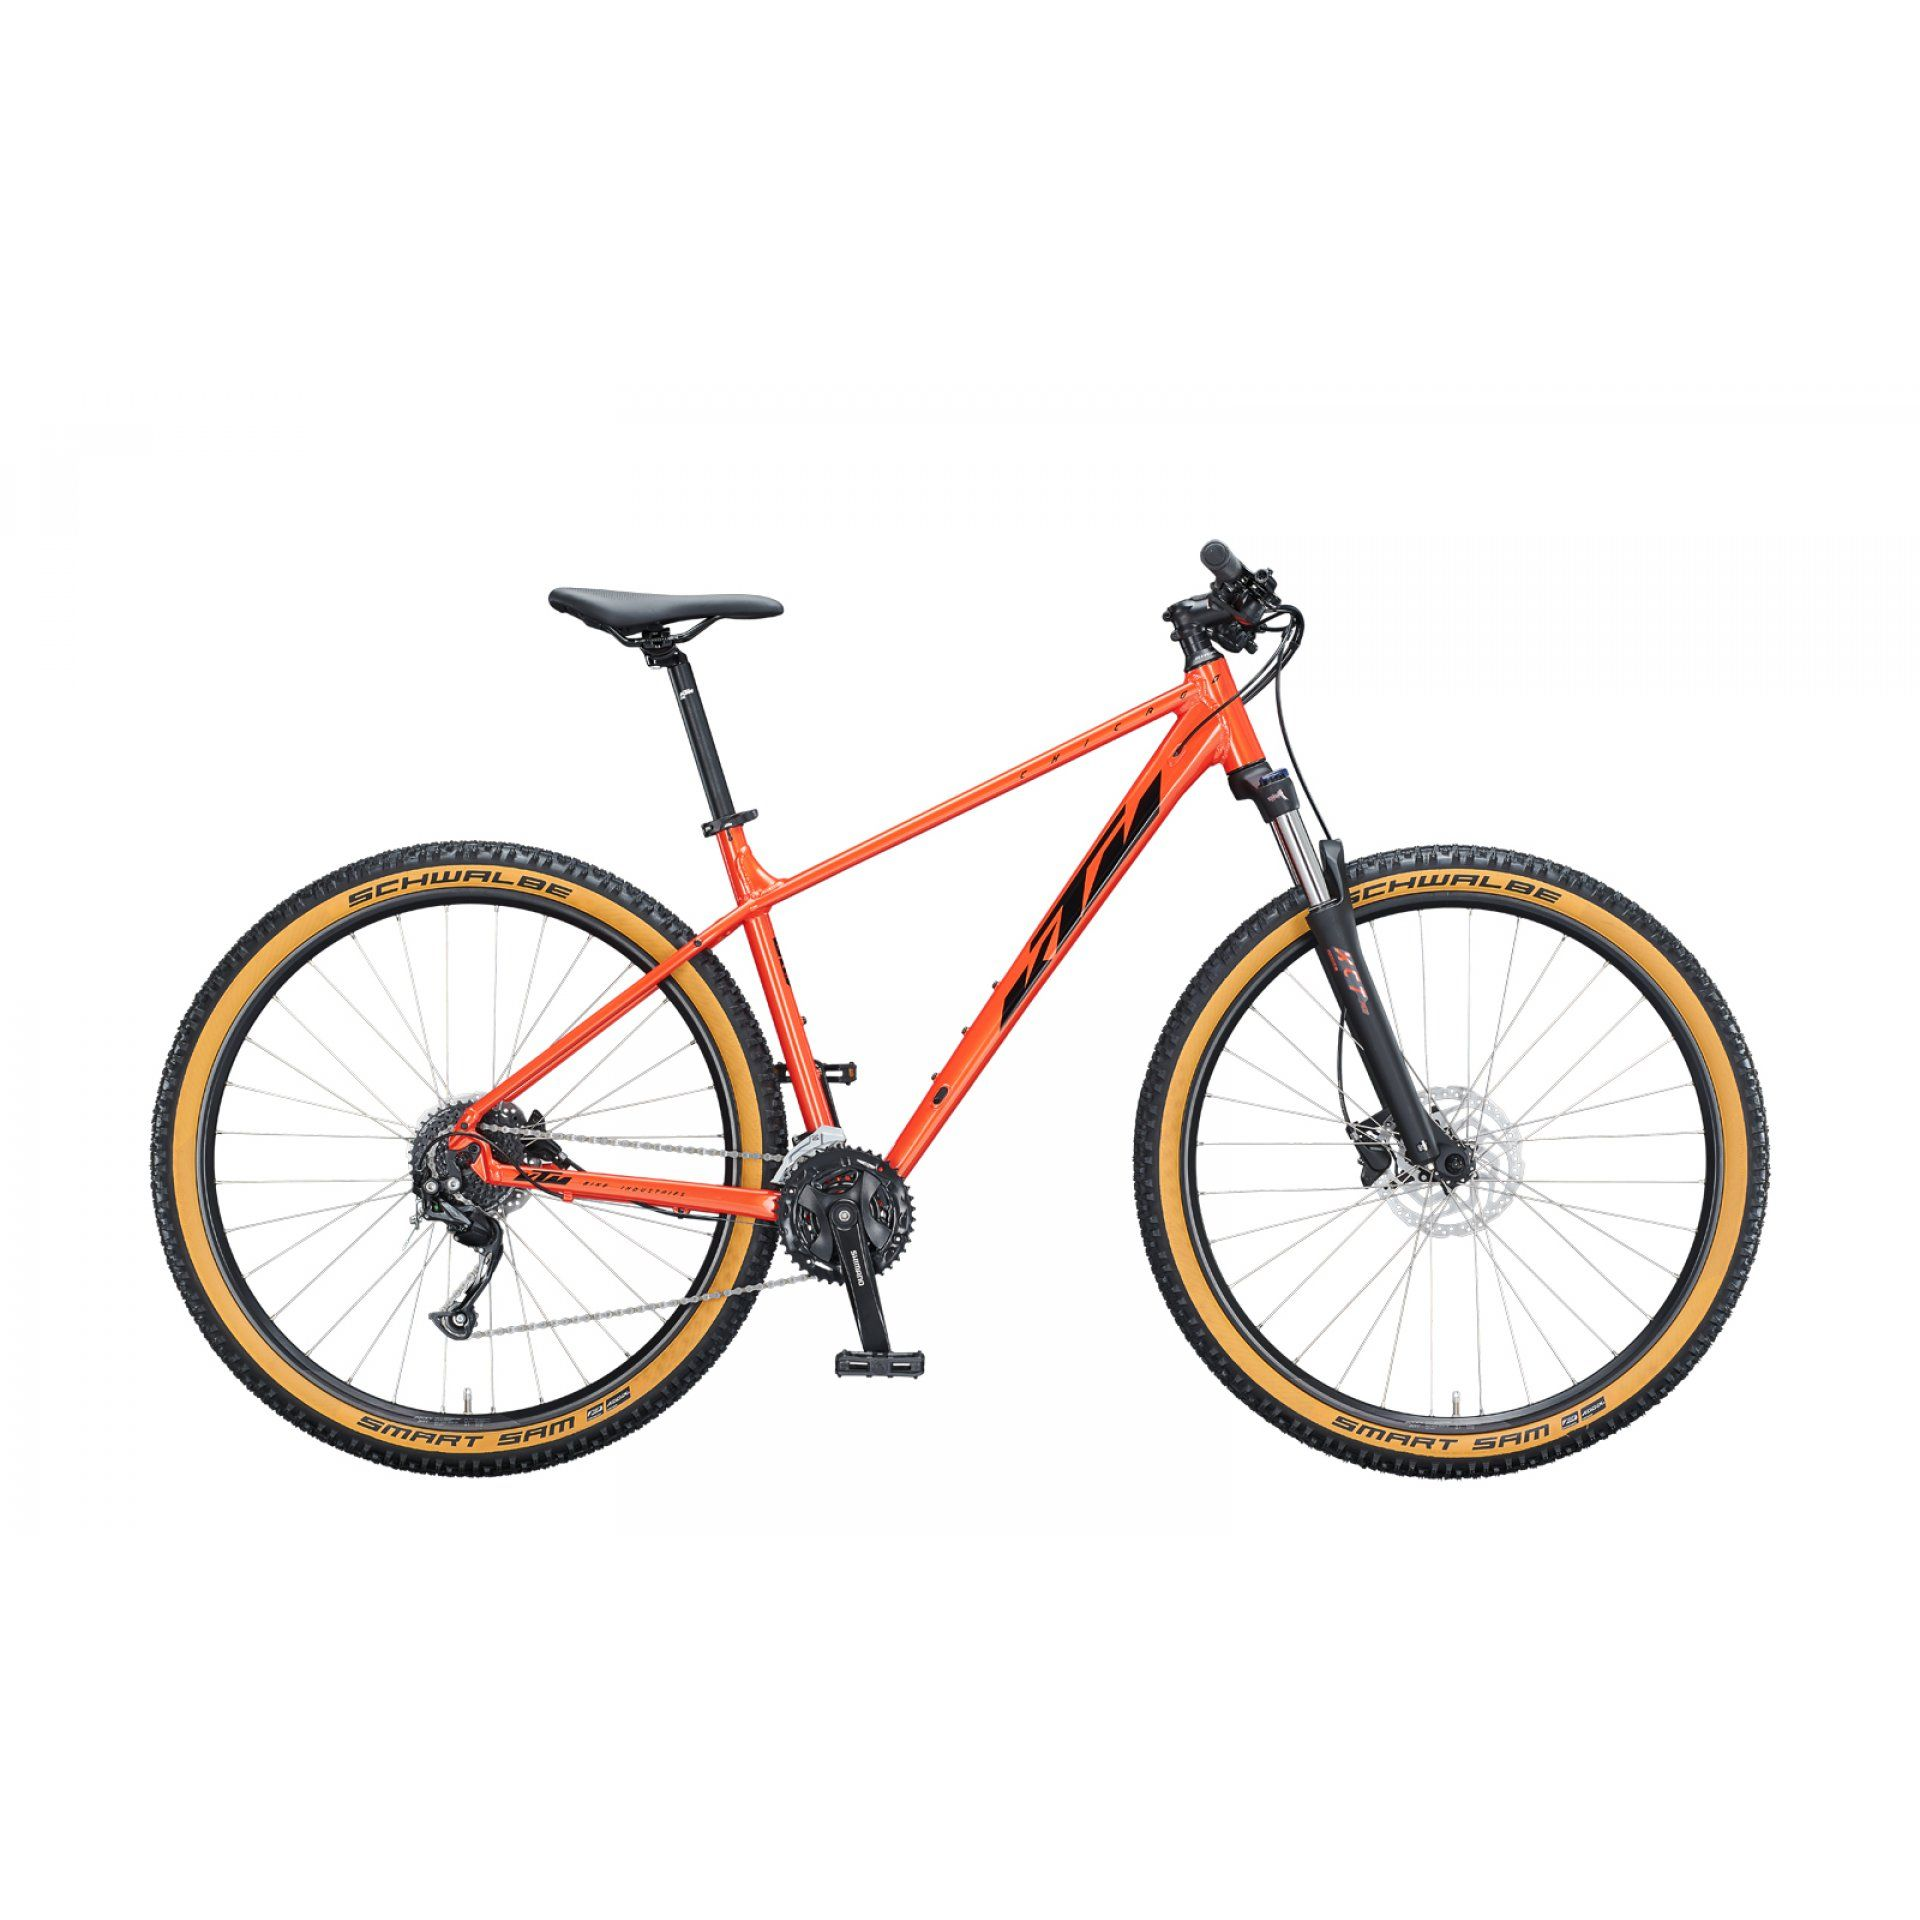 ROWER KTM CHICAGO DISC 291 ORANGE|BLACK 021155